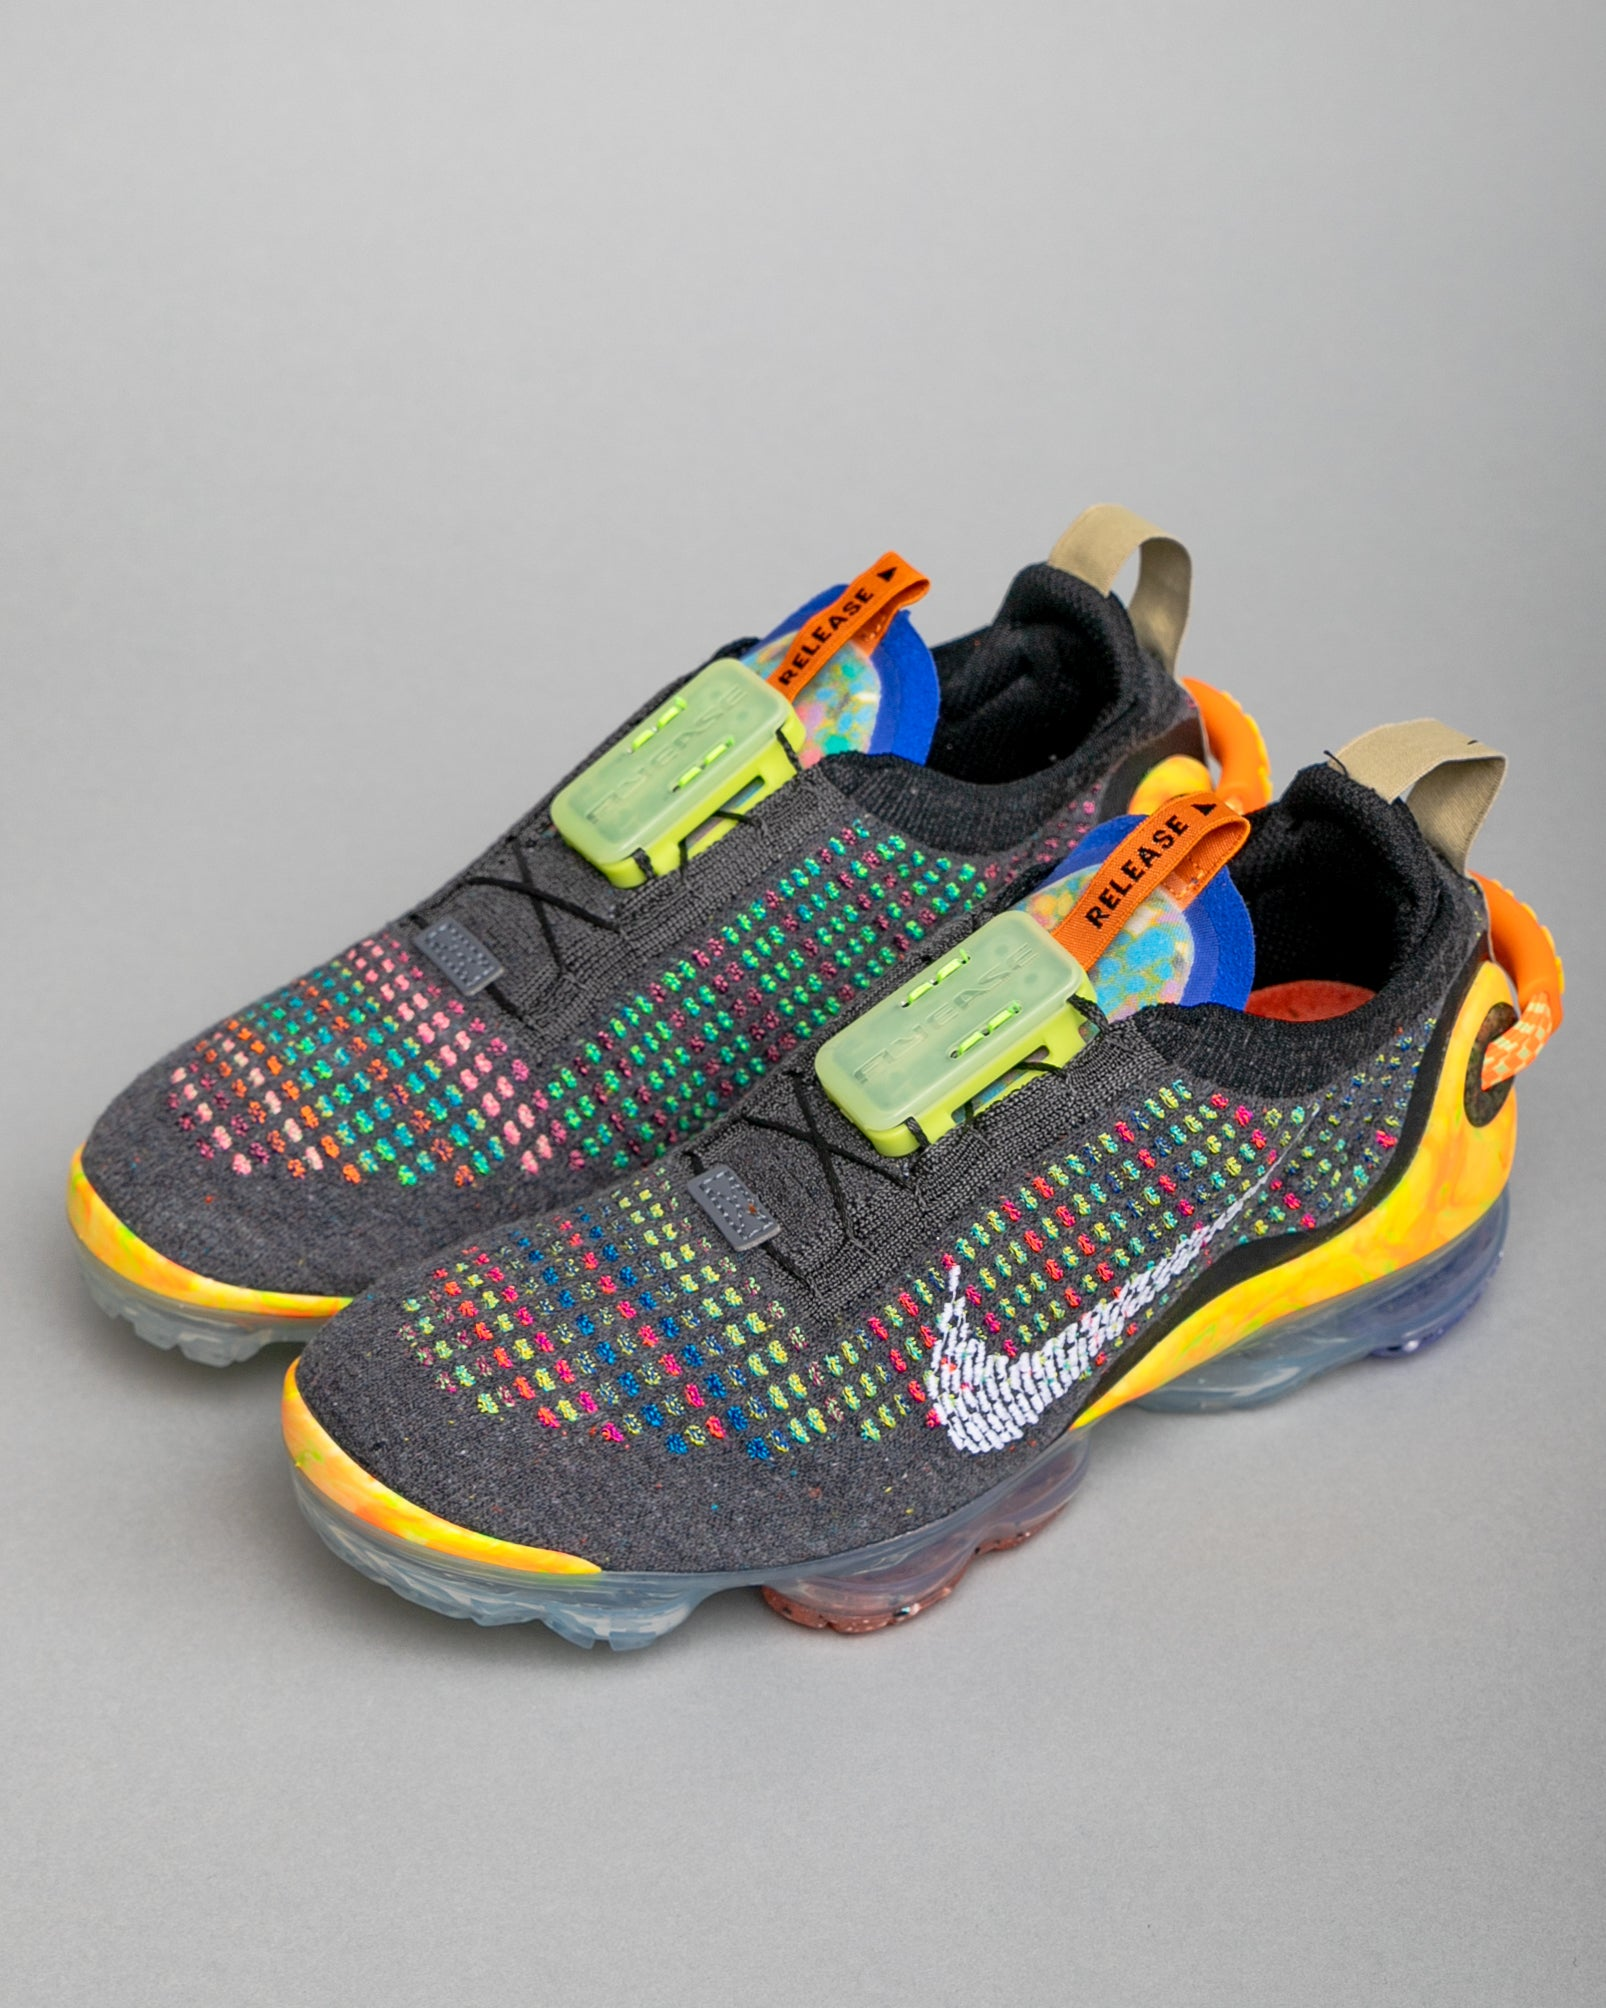 W Air Vapormax 2020 FK Iron Grey/White/Multi Color